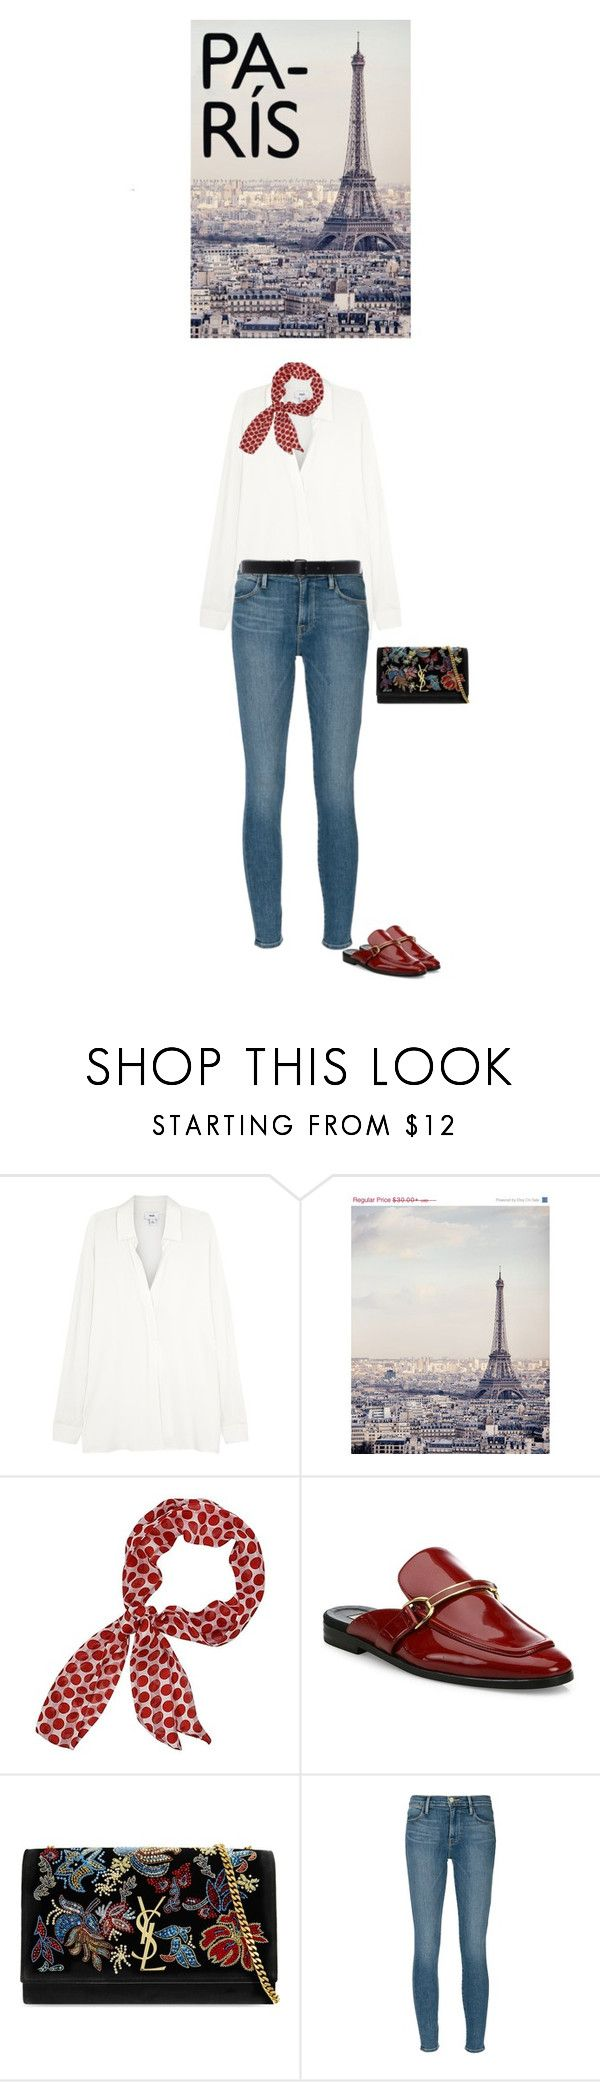 """""""Paris chic"""" by blueeyed-dreamer ❤ liked on Polyvore featuring Vince, WALL, STELLA McCARTNEY, Yves Saint Laurent, Frame Denim and Ann Demeulemeester"""